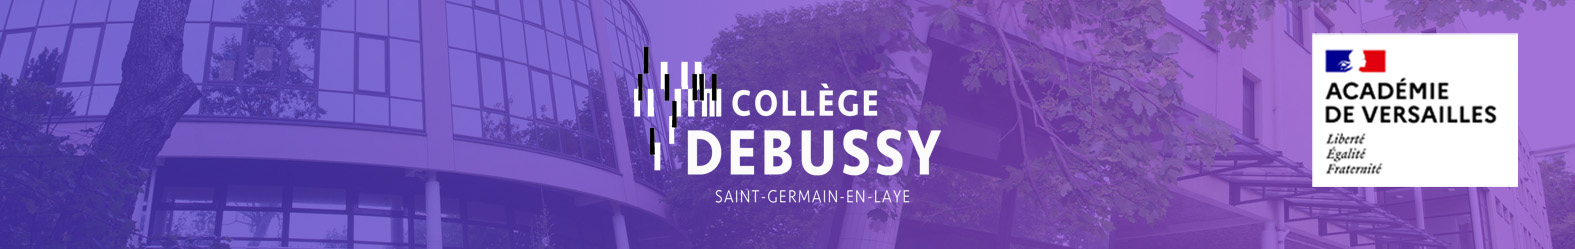 Collège Claude Debussy